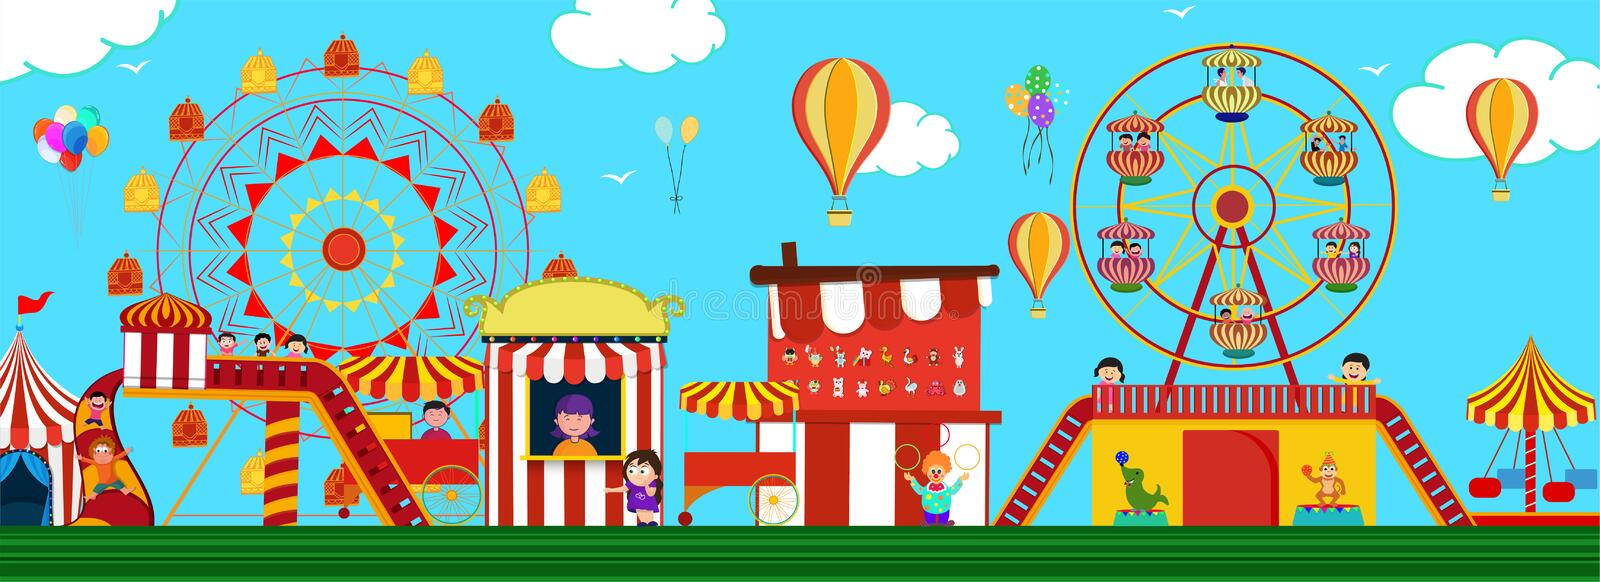 Amusement park view with carousels, roller coaster and hot air balloons for Fun Fair Carnival concept. stock illustration